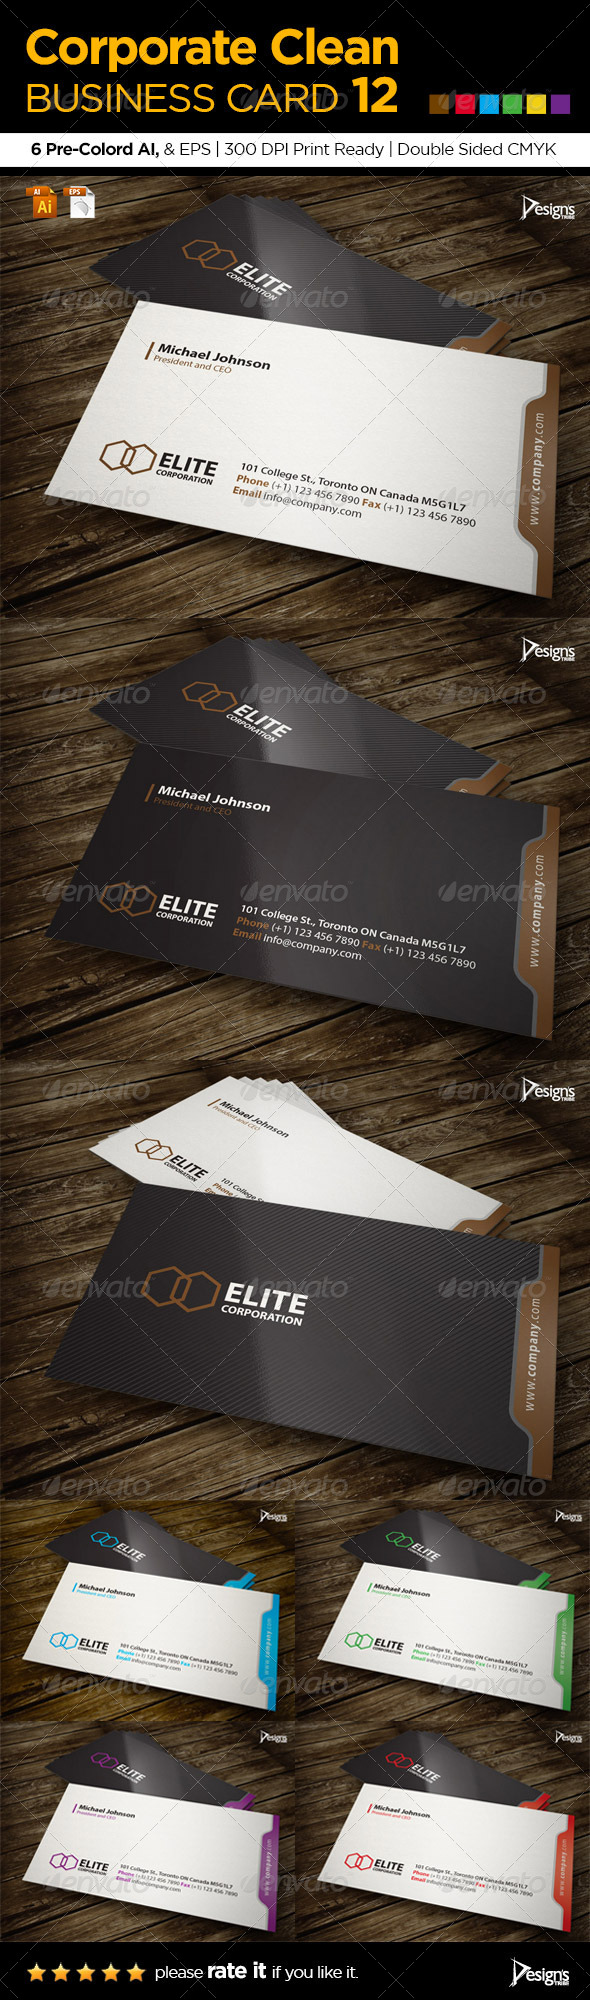 Corporate Clean Business Card 12 - Corporate Business Cards